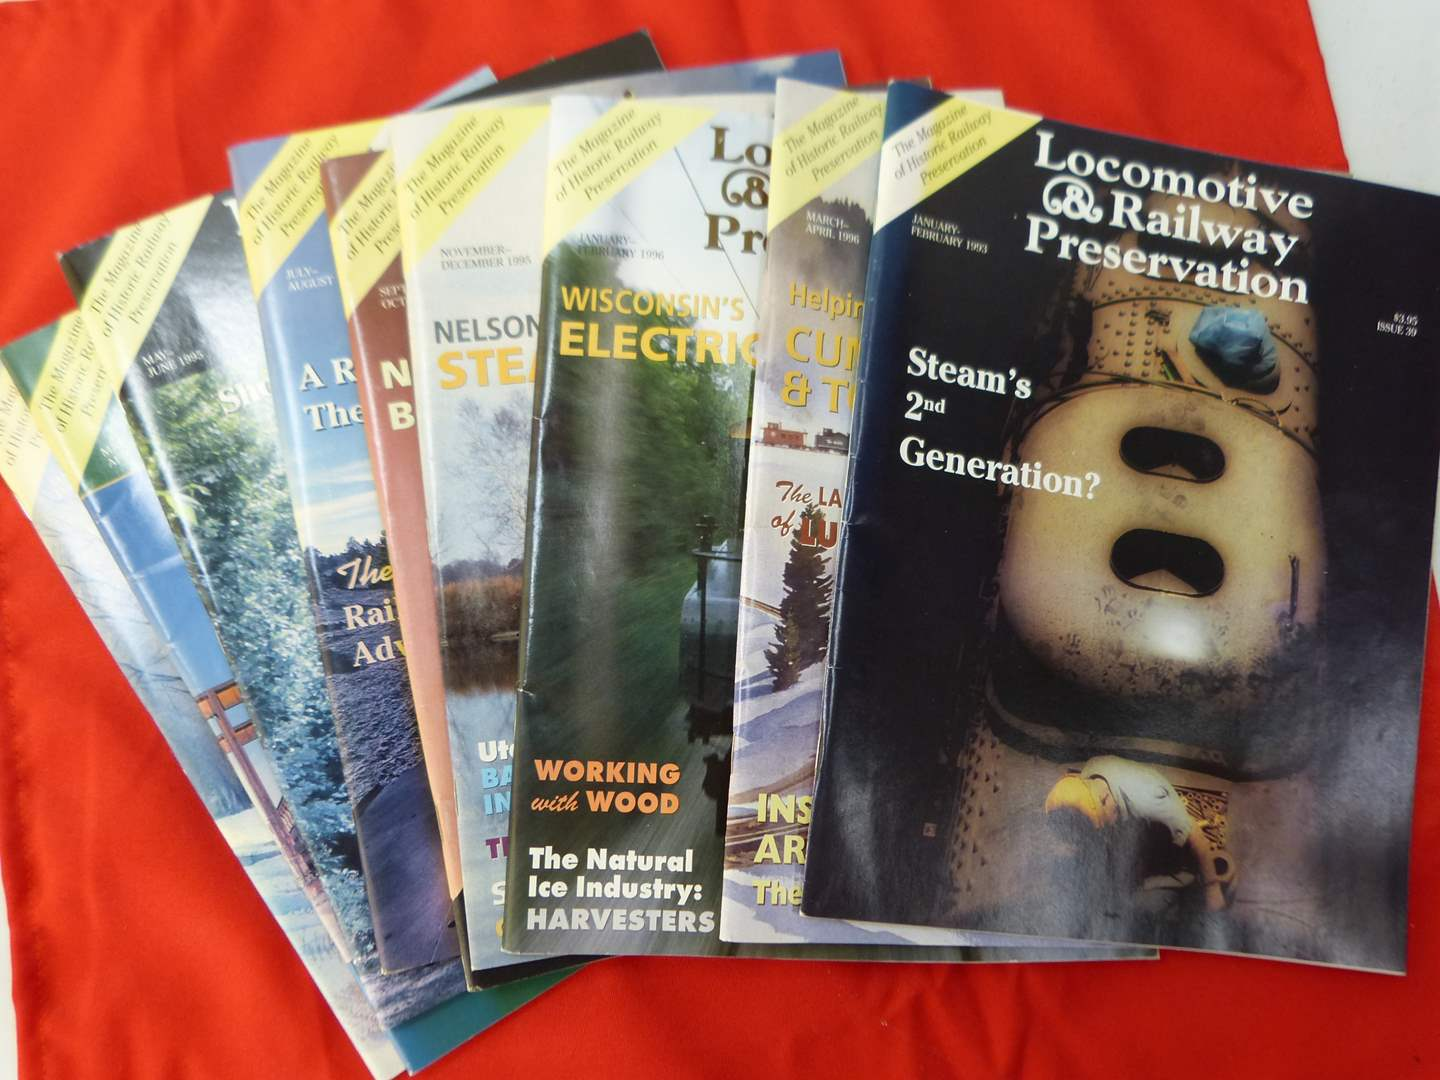 Lot # 288   Large collection of Locomotive & Railroad Preservation magazines